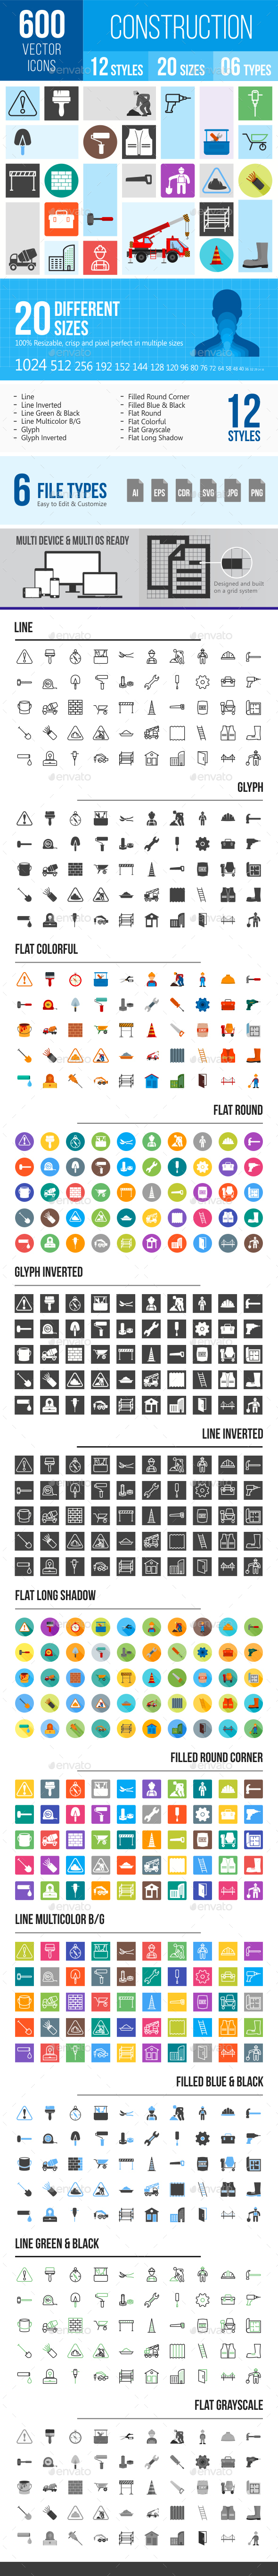 600 Construction Icons - Icons